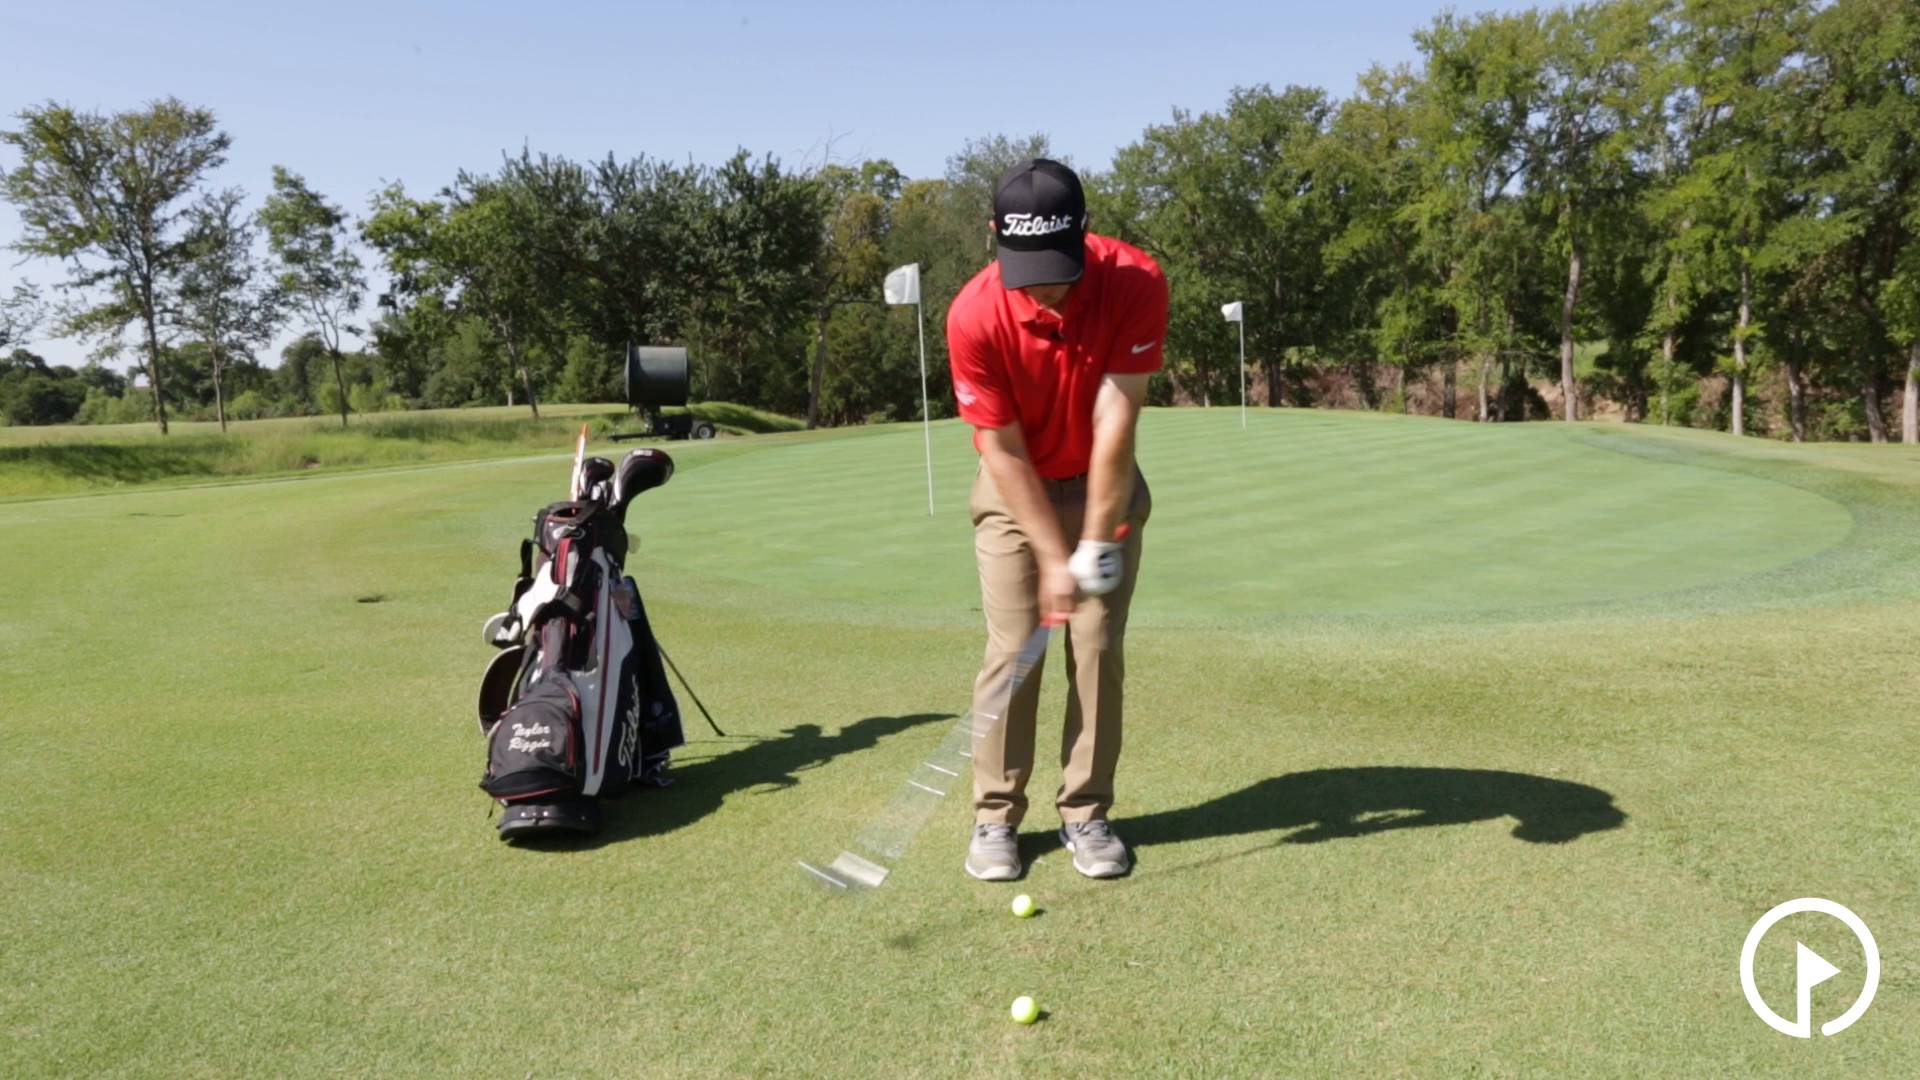 Practice Drills: 2 Ball Drill to Work on Downward Strike